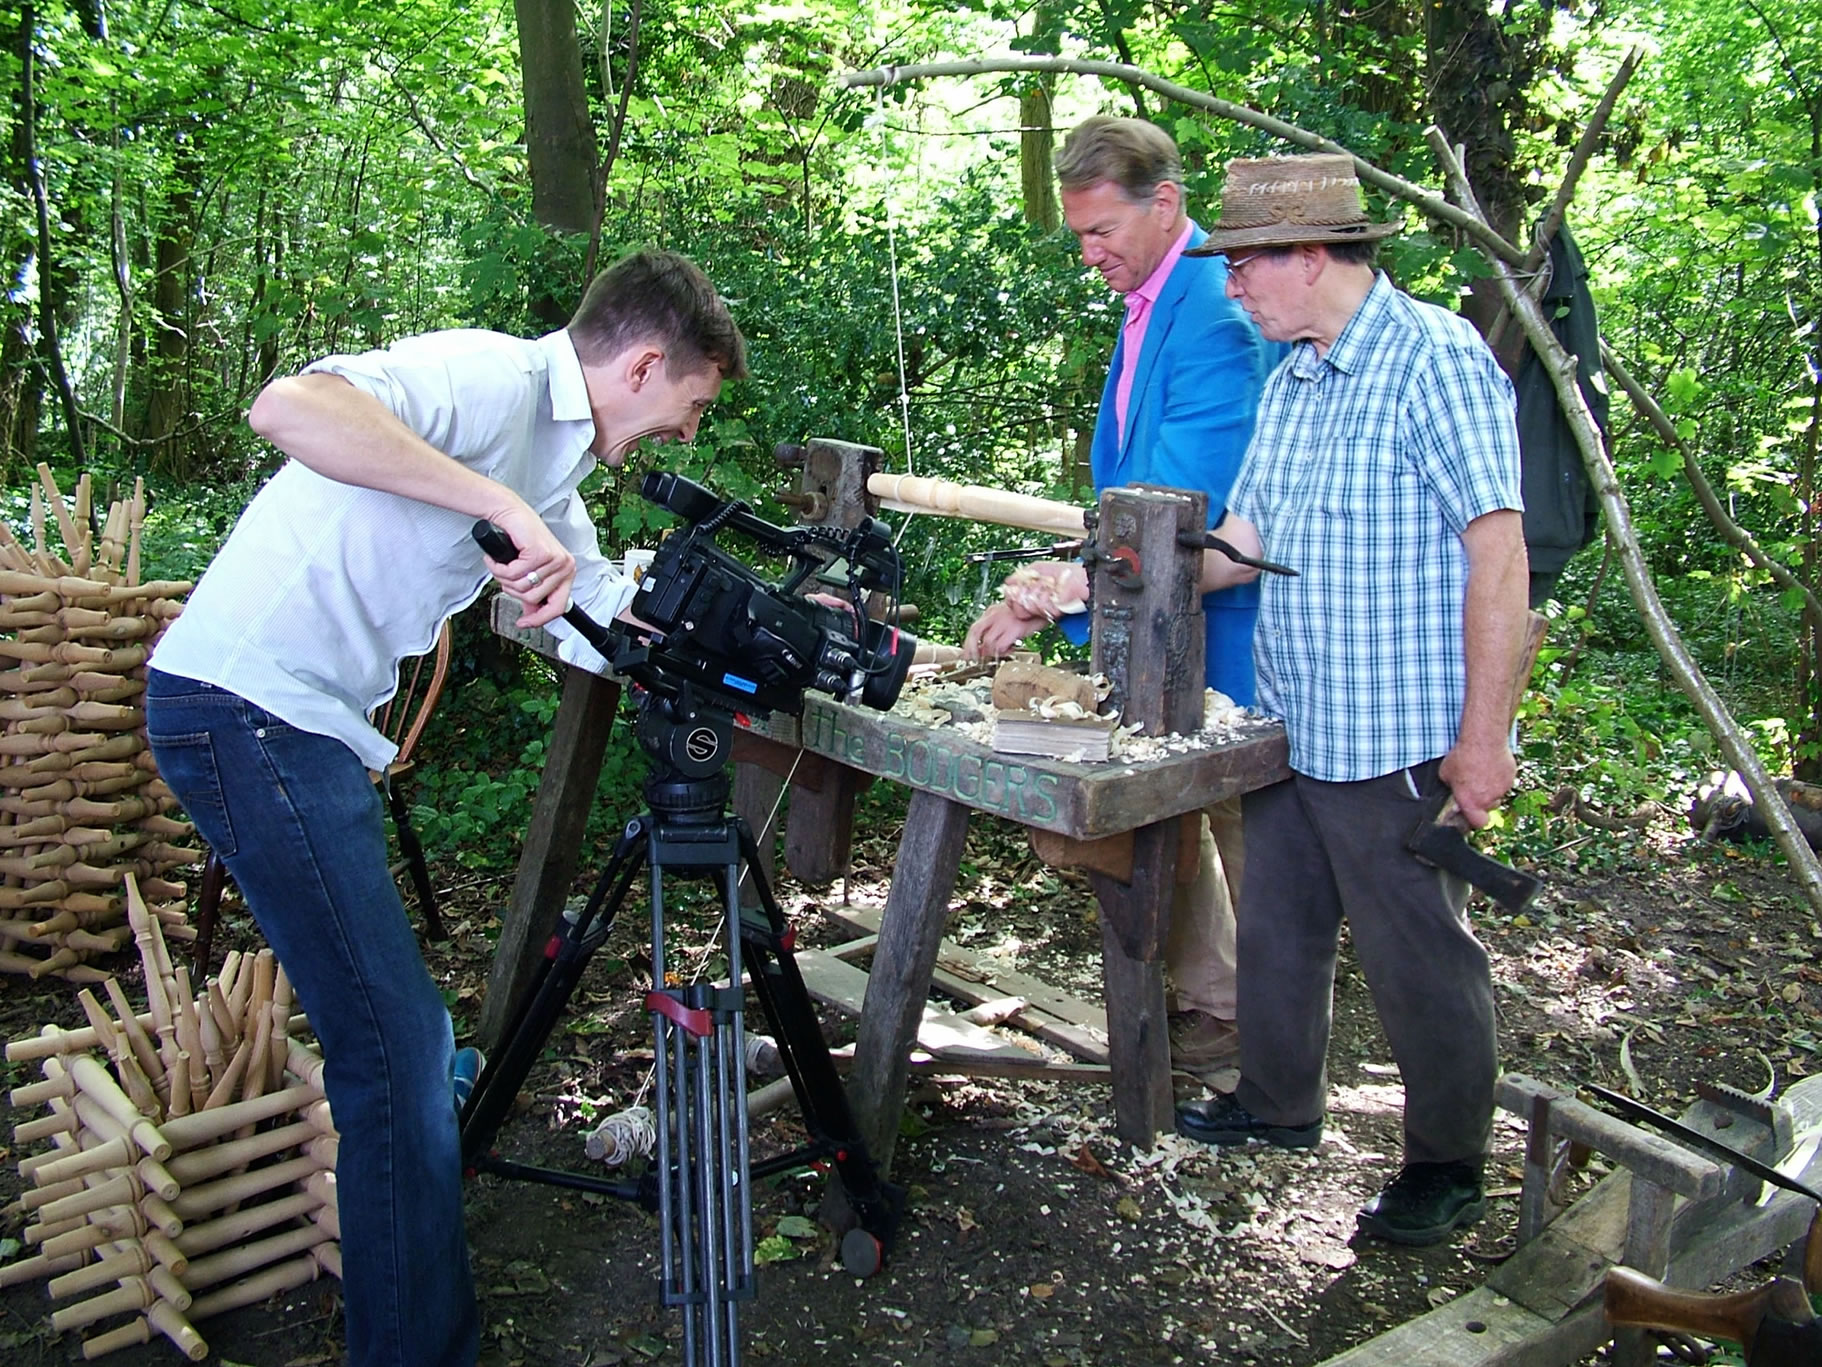 Stuart King with Michael Portillo filming for TV -Great Railway Journeys (4)